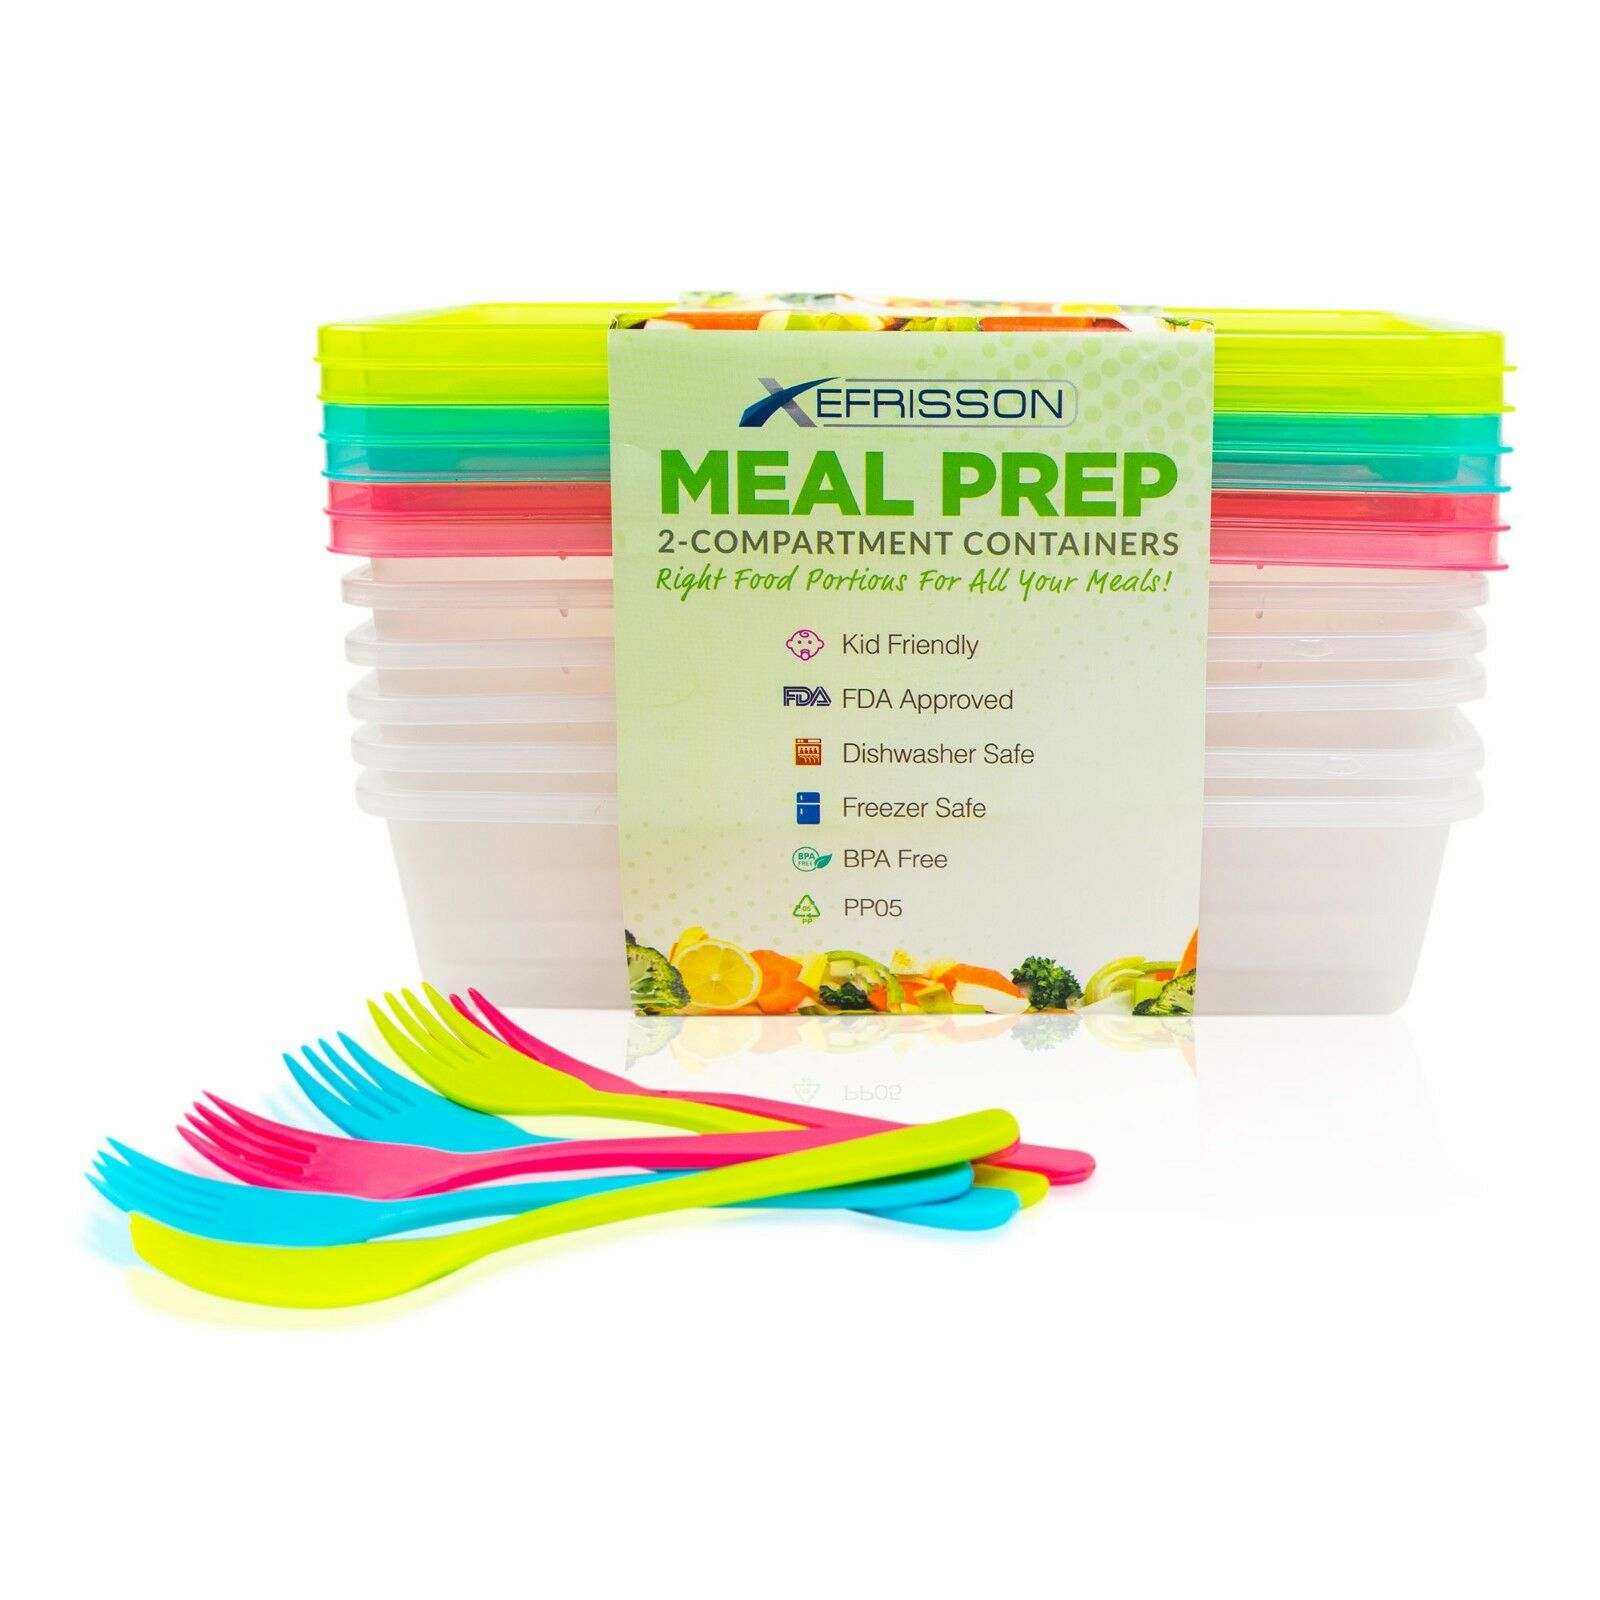 6-Pack Meal Prep Lunch Box Food Containers Set + Free Forks!!!